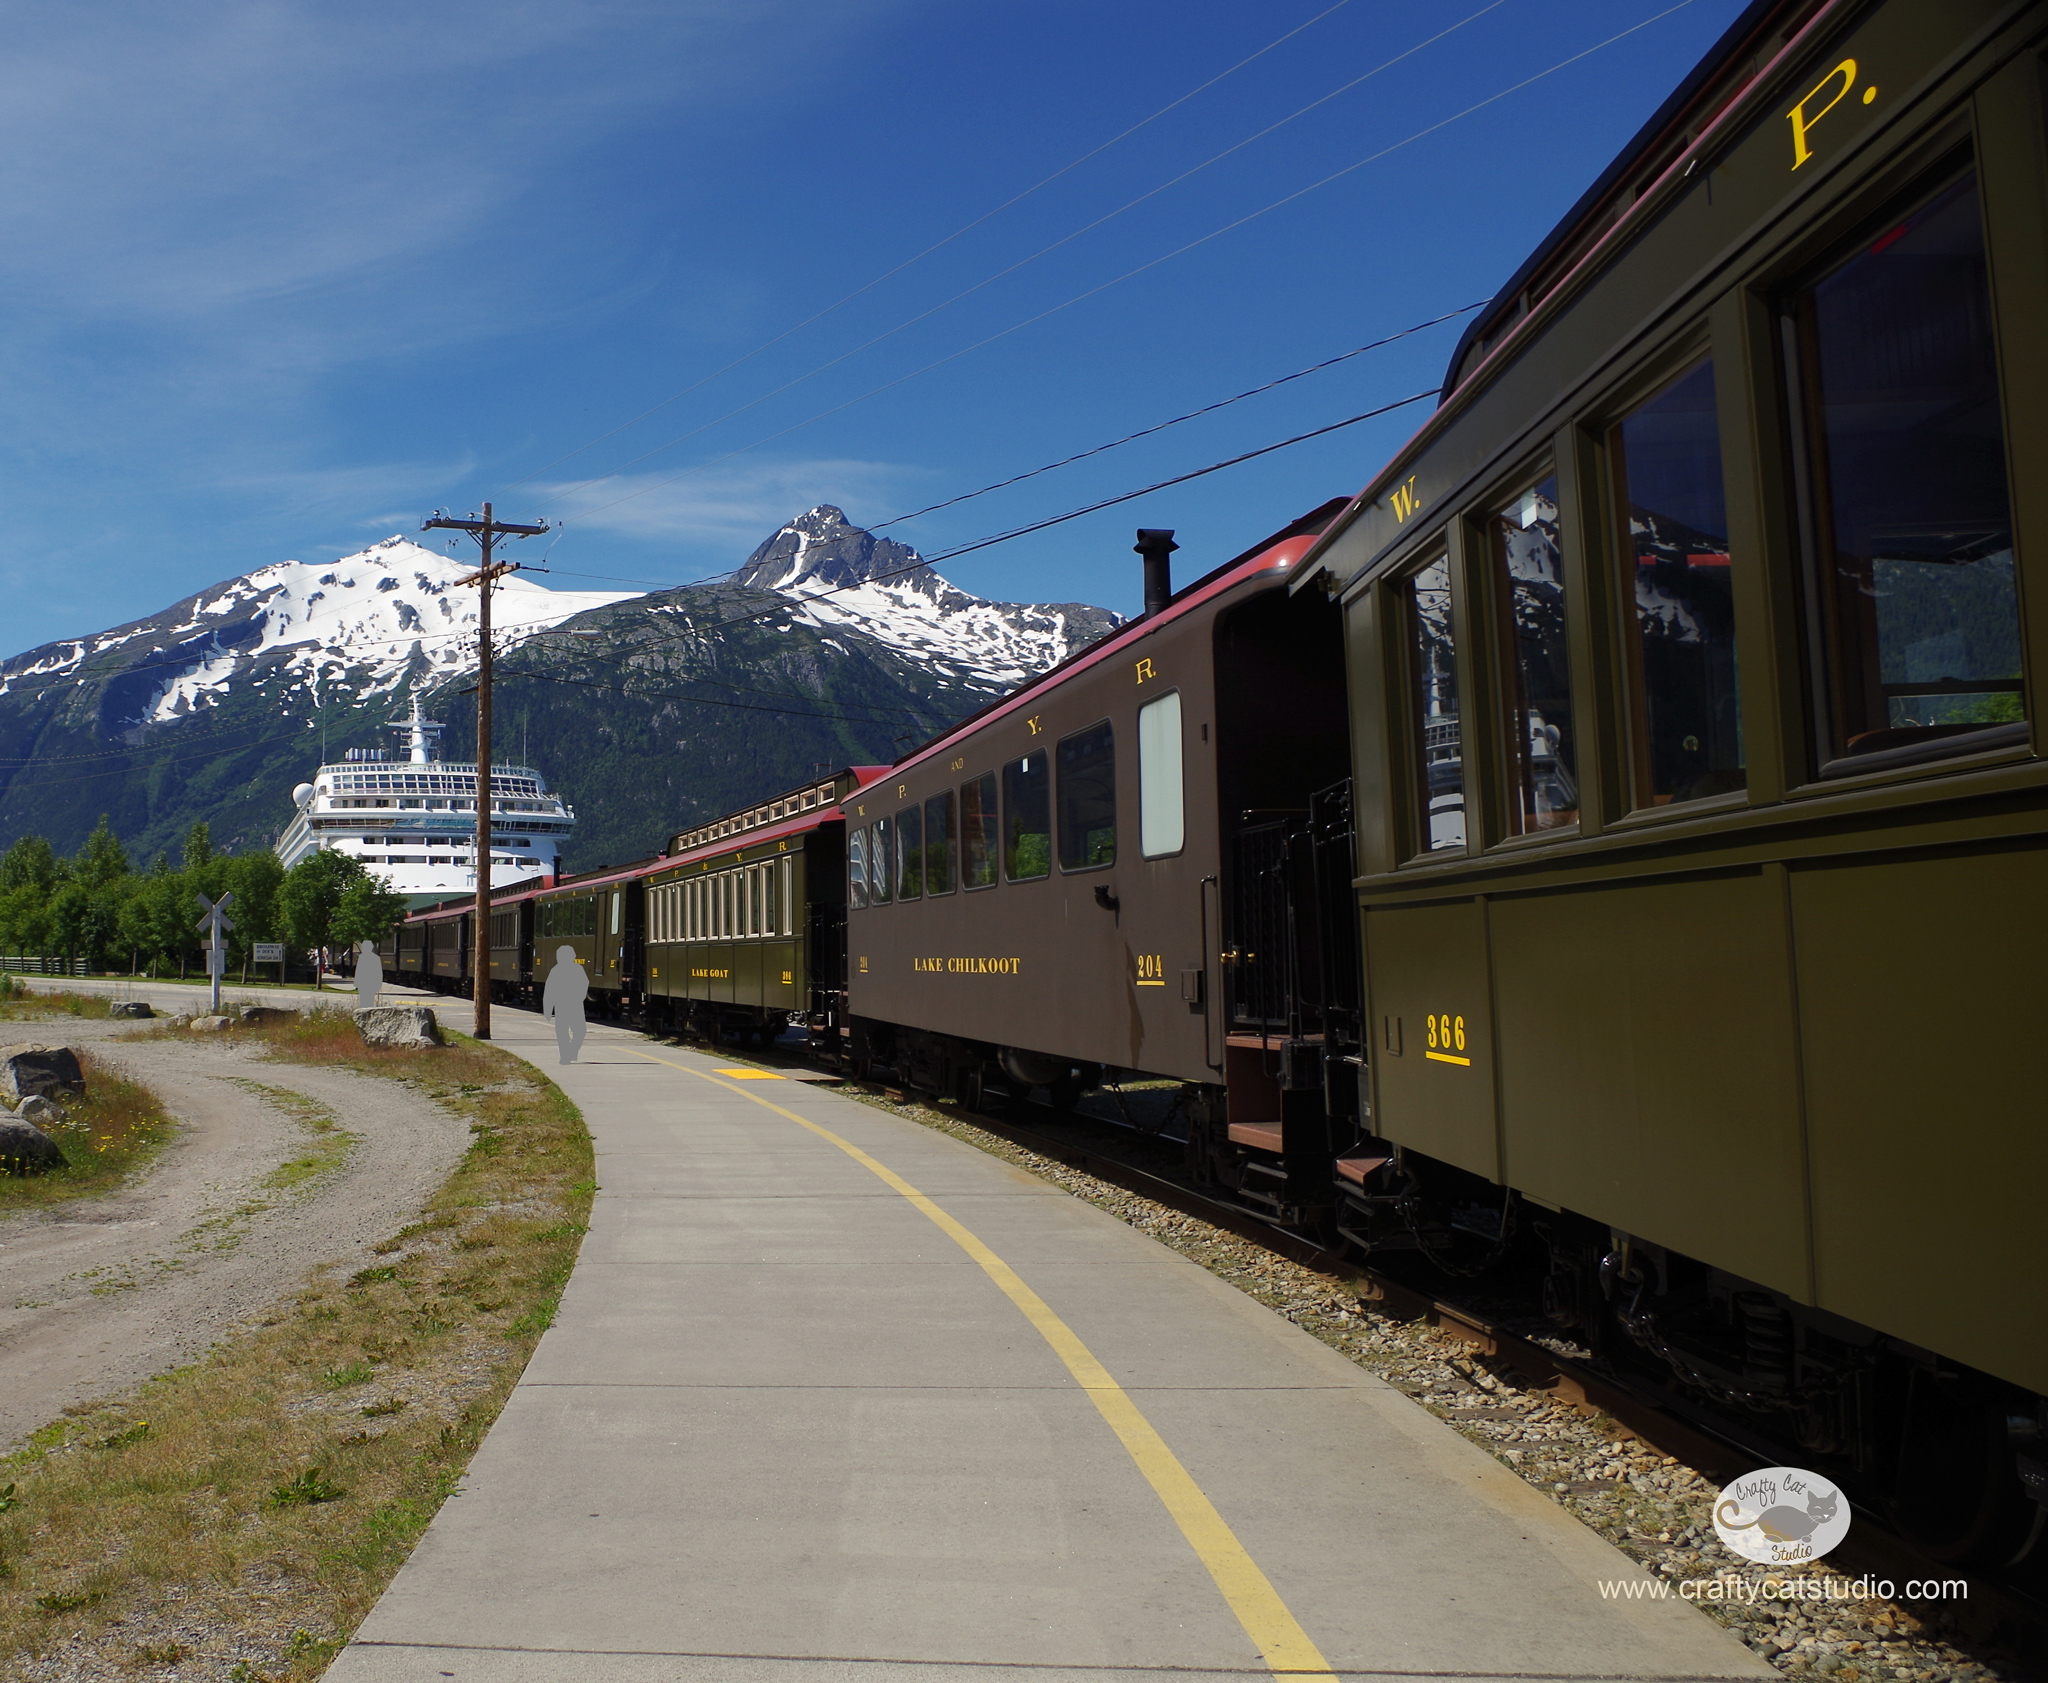 skagway_train2.jpg